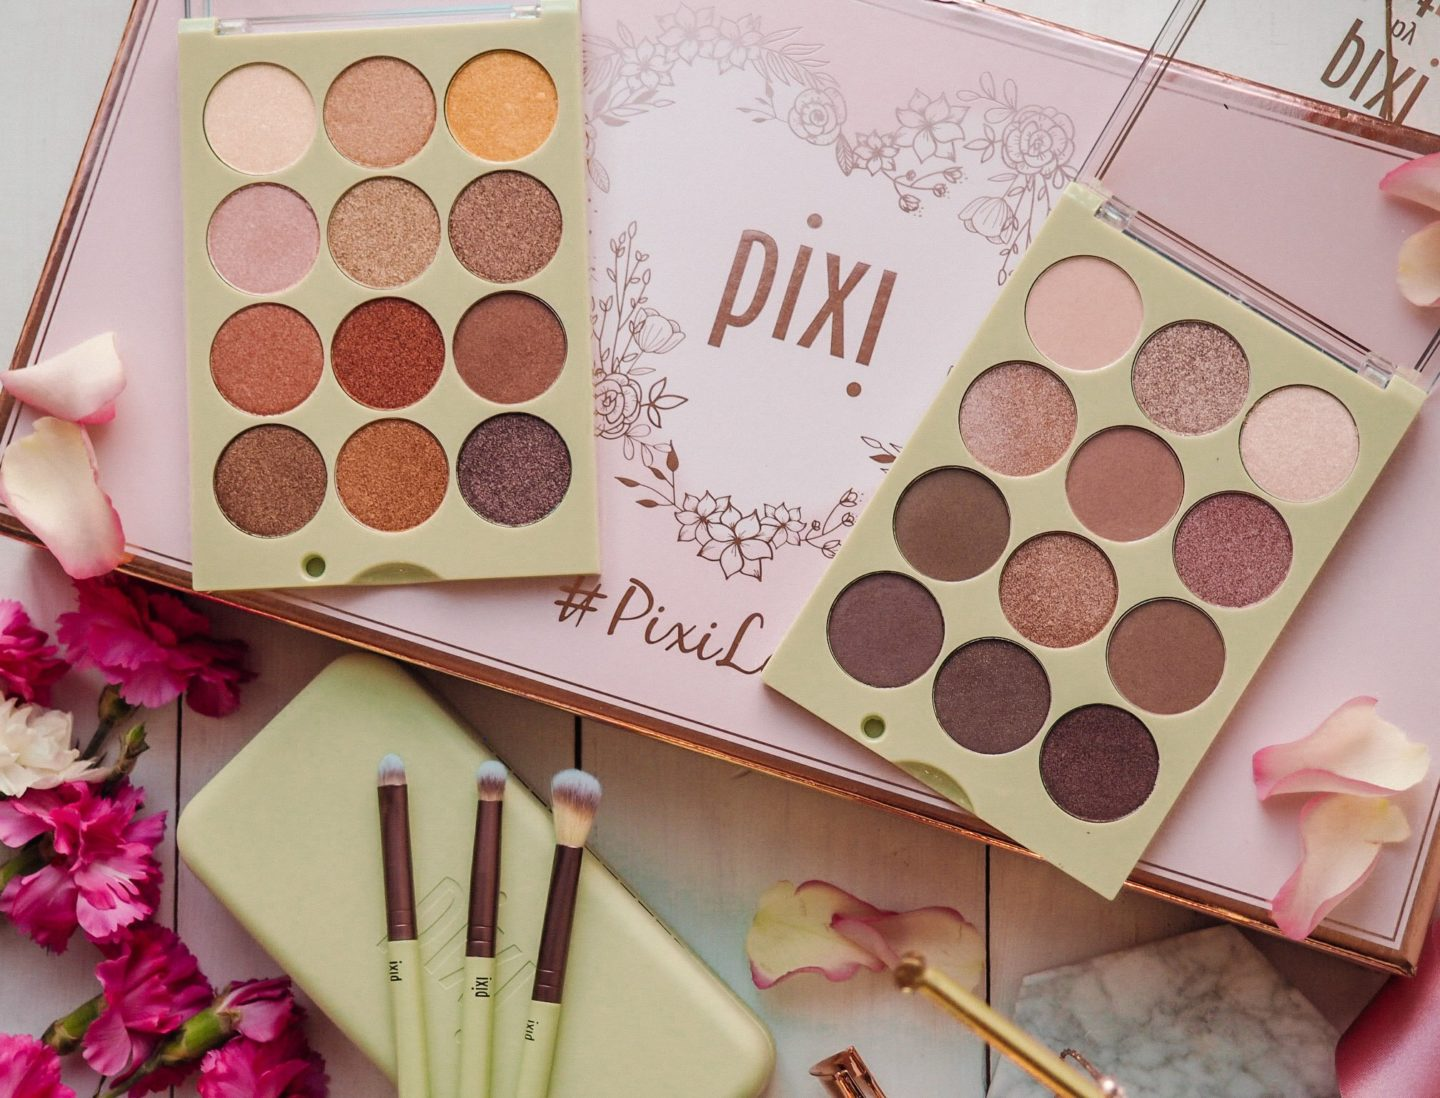 Flatlay of Pixi Eye Reflection Shadow Palettes and eyeshadow brushes